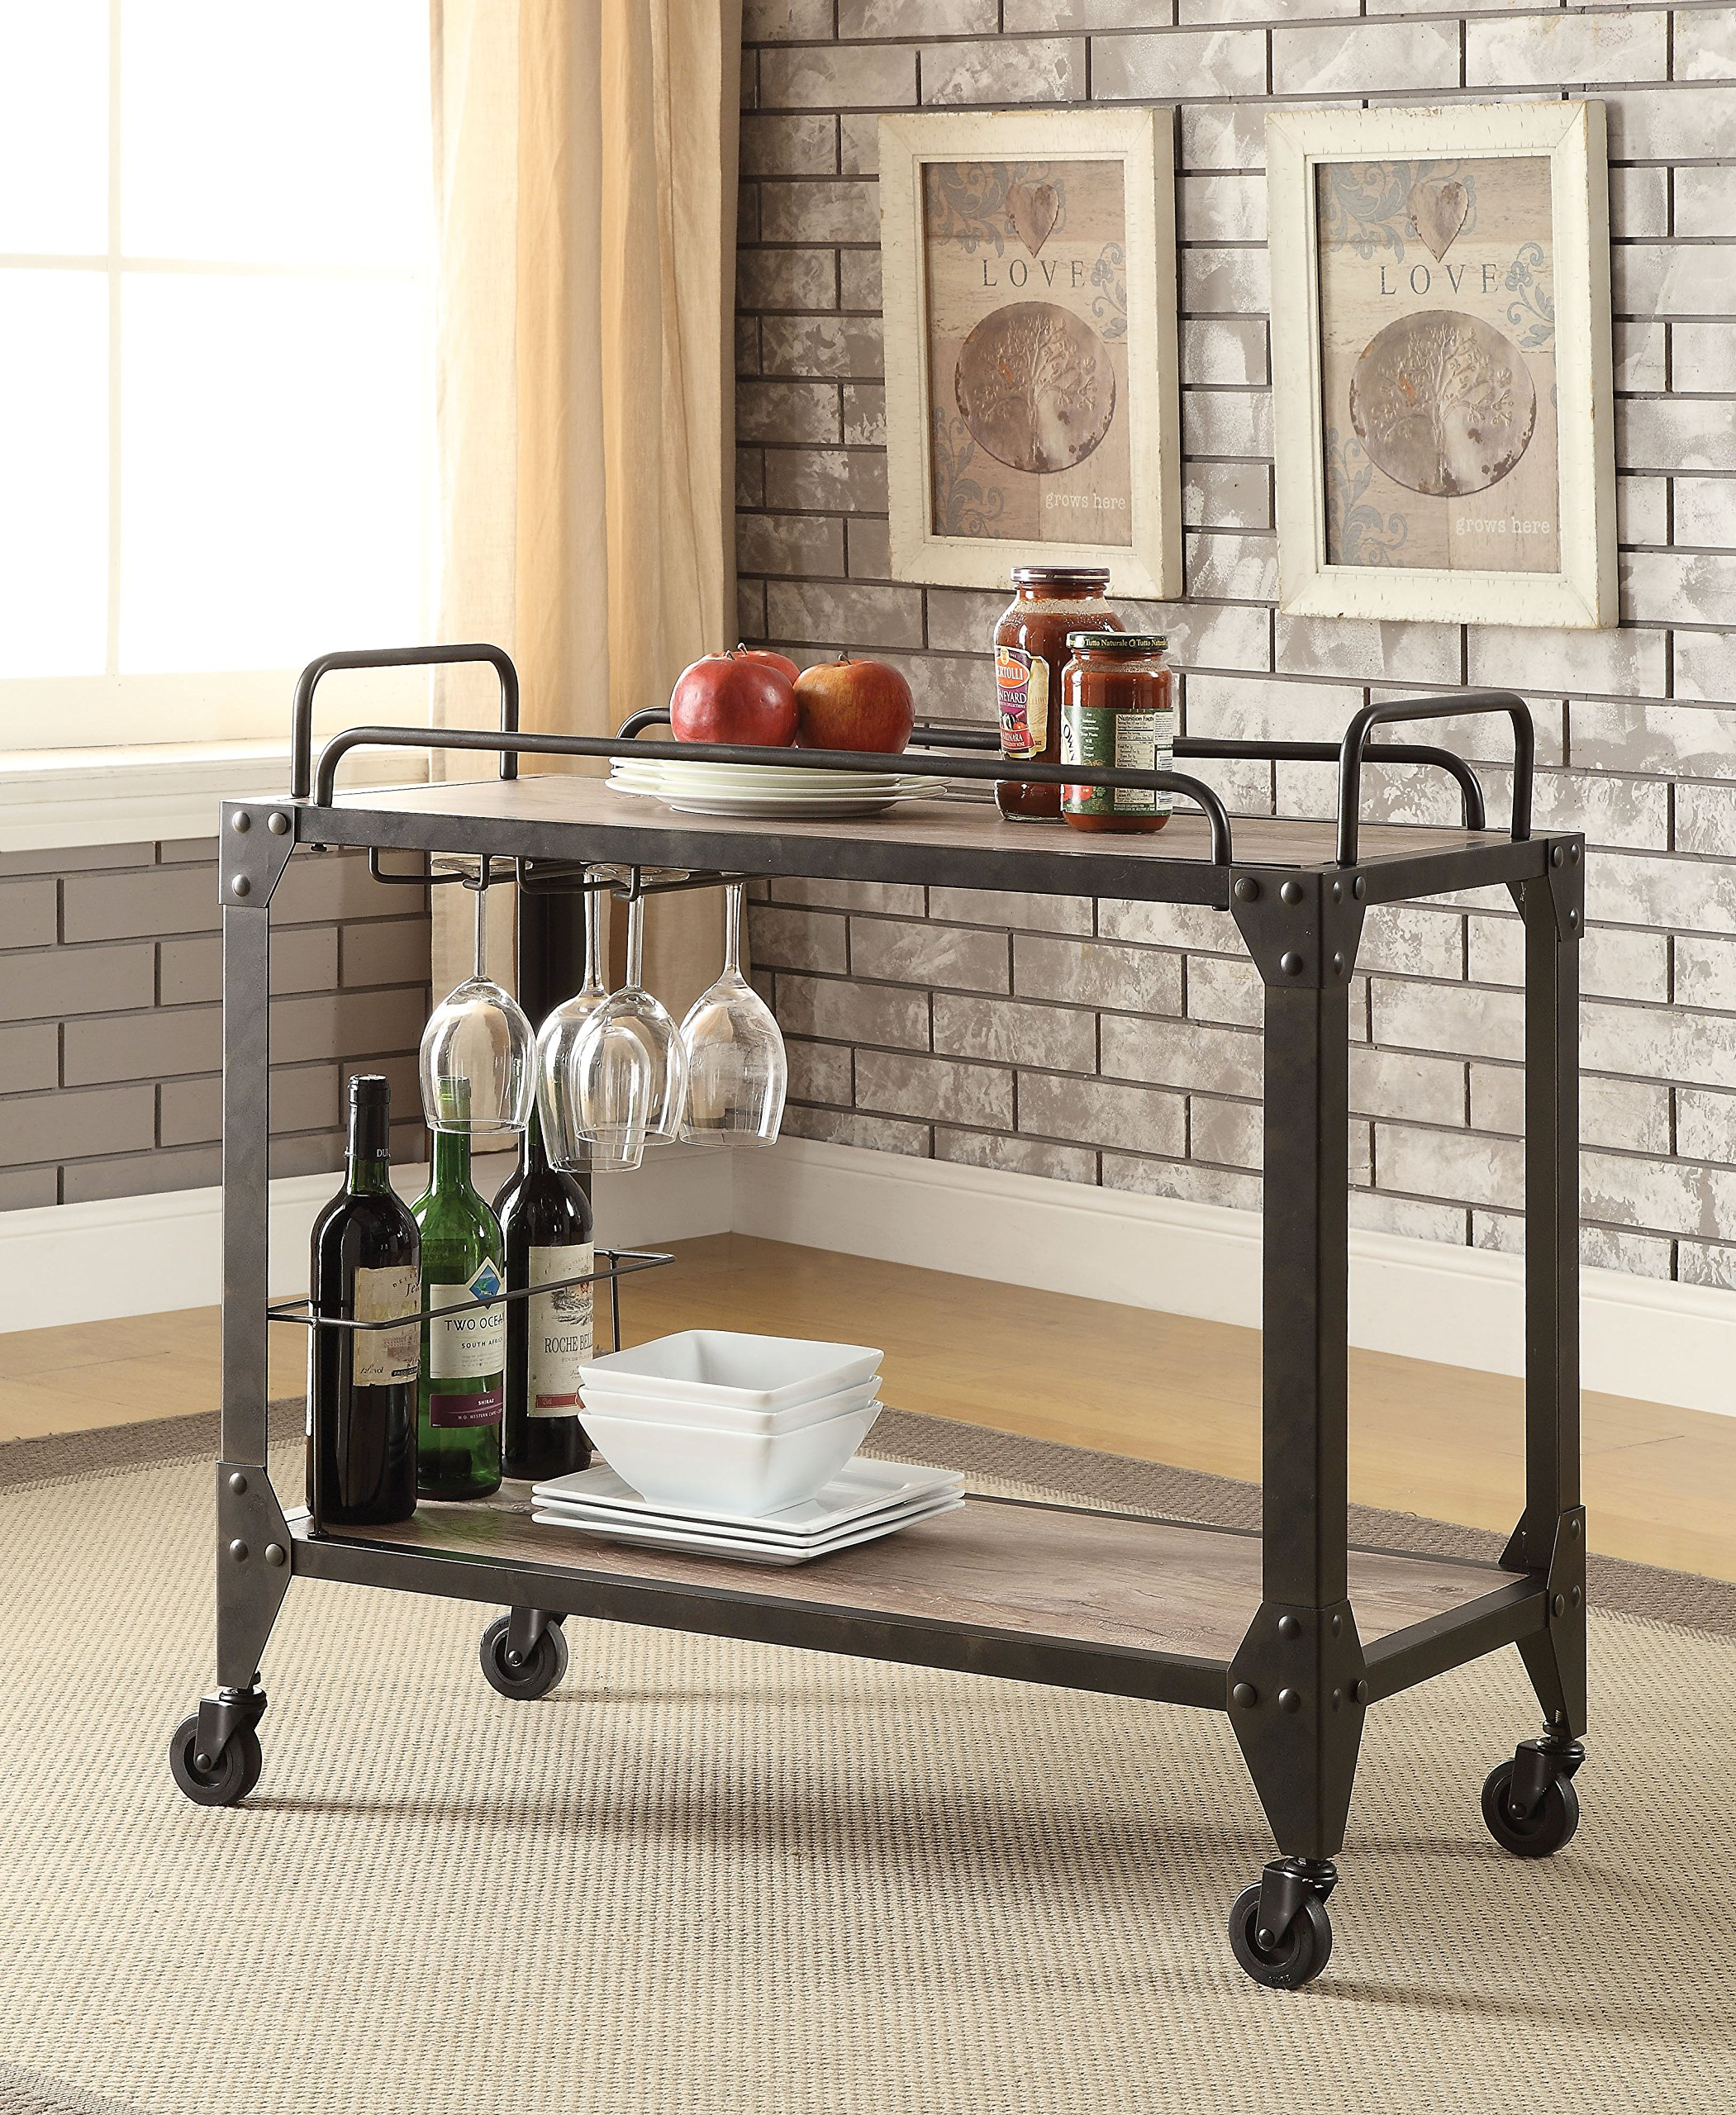 Acme Furniture ACME Caitlin Rustic Oak and Black Serving Cart by Acme Furniture